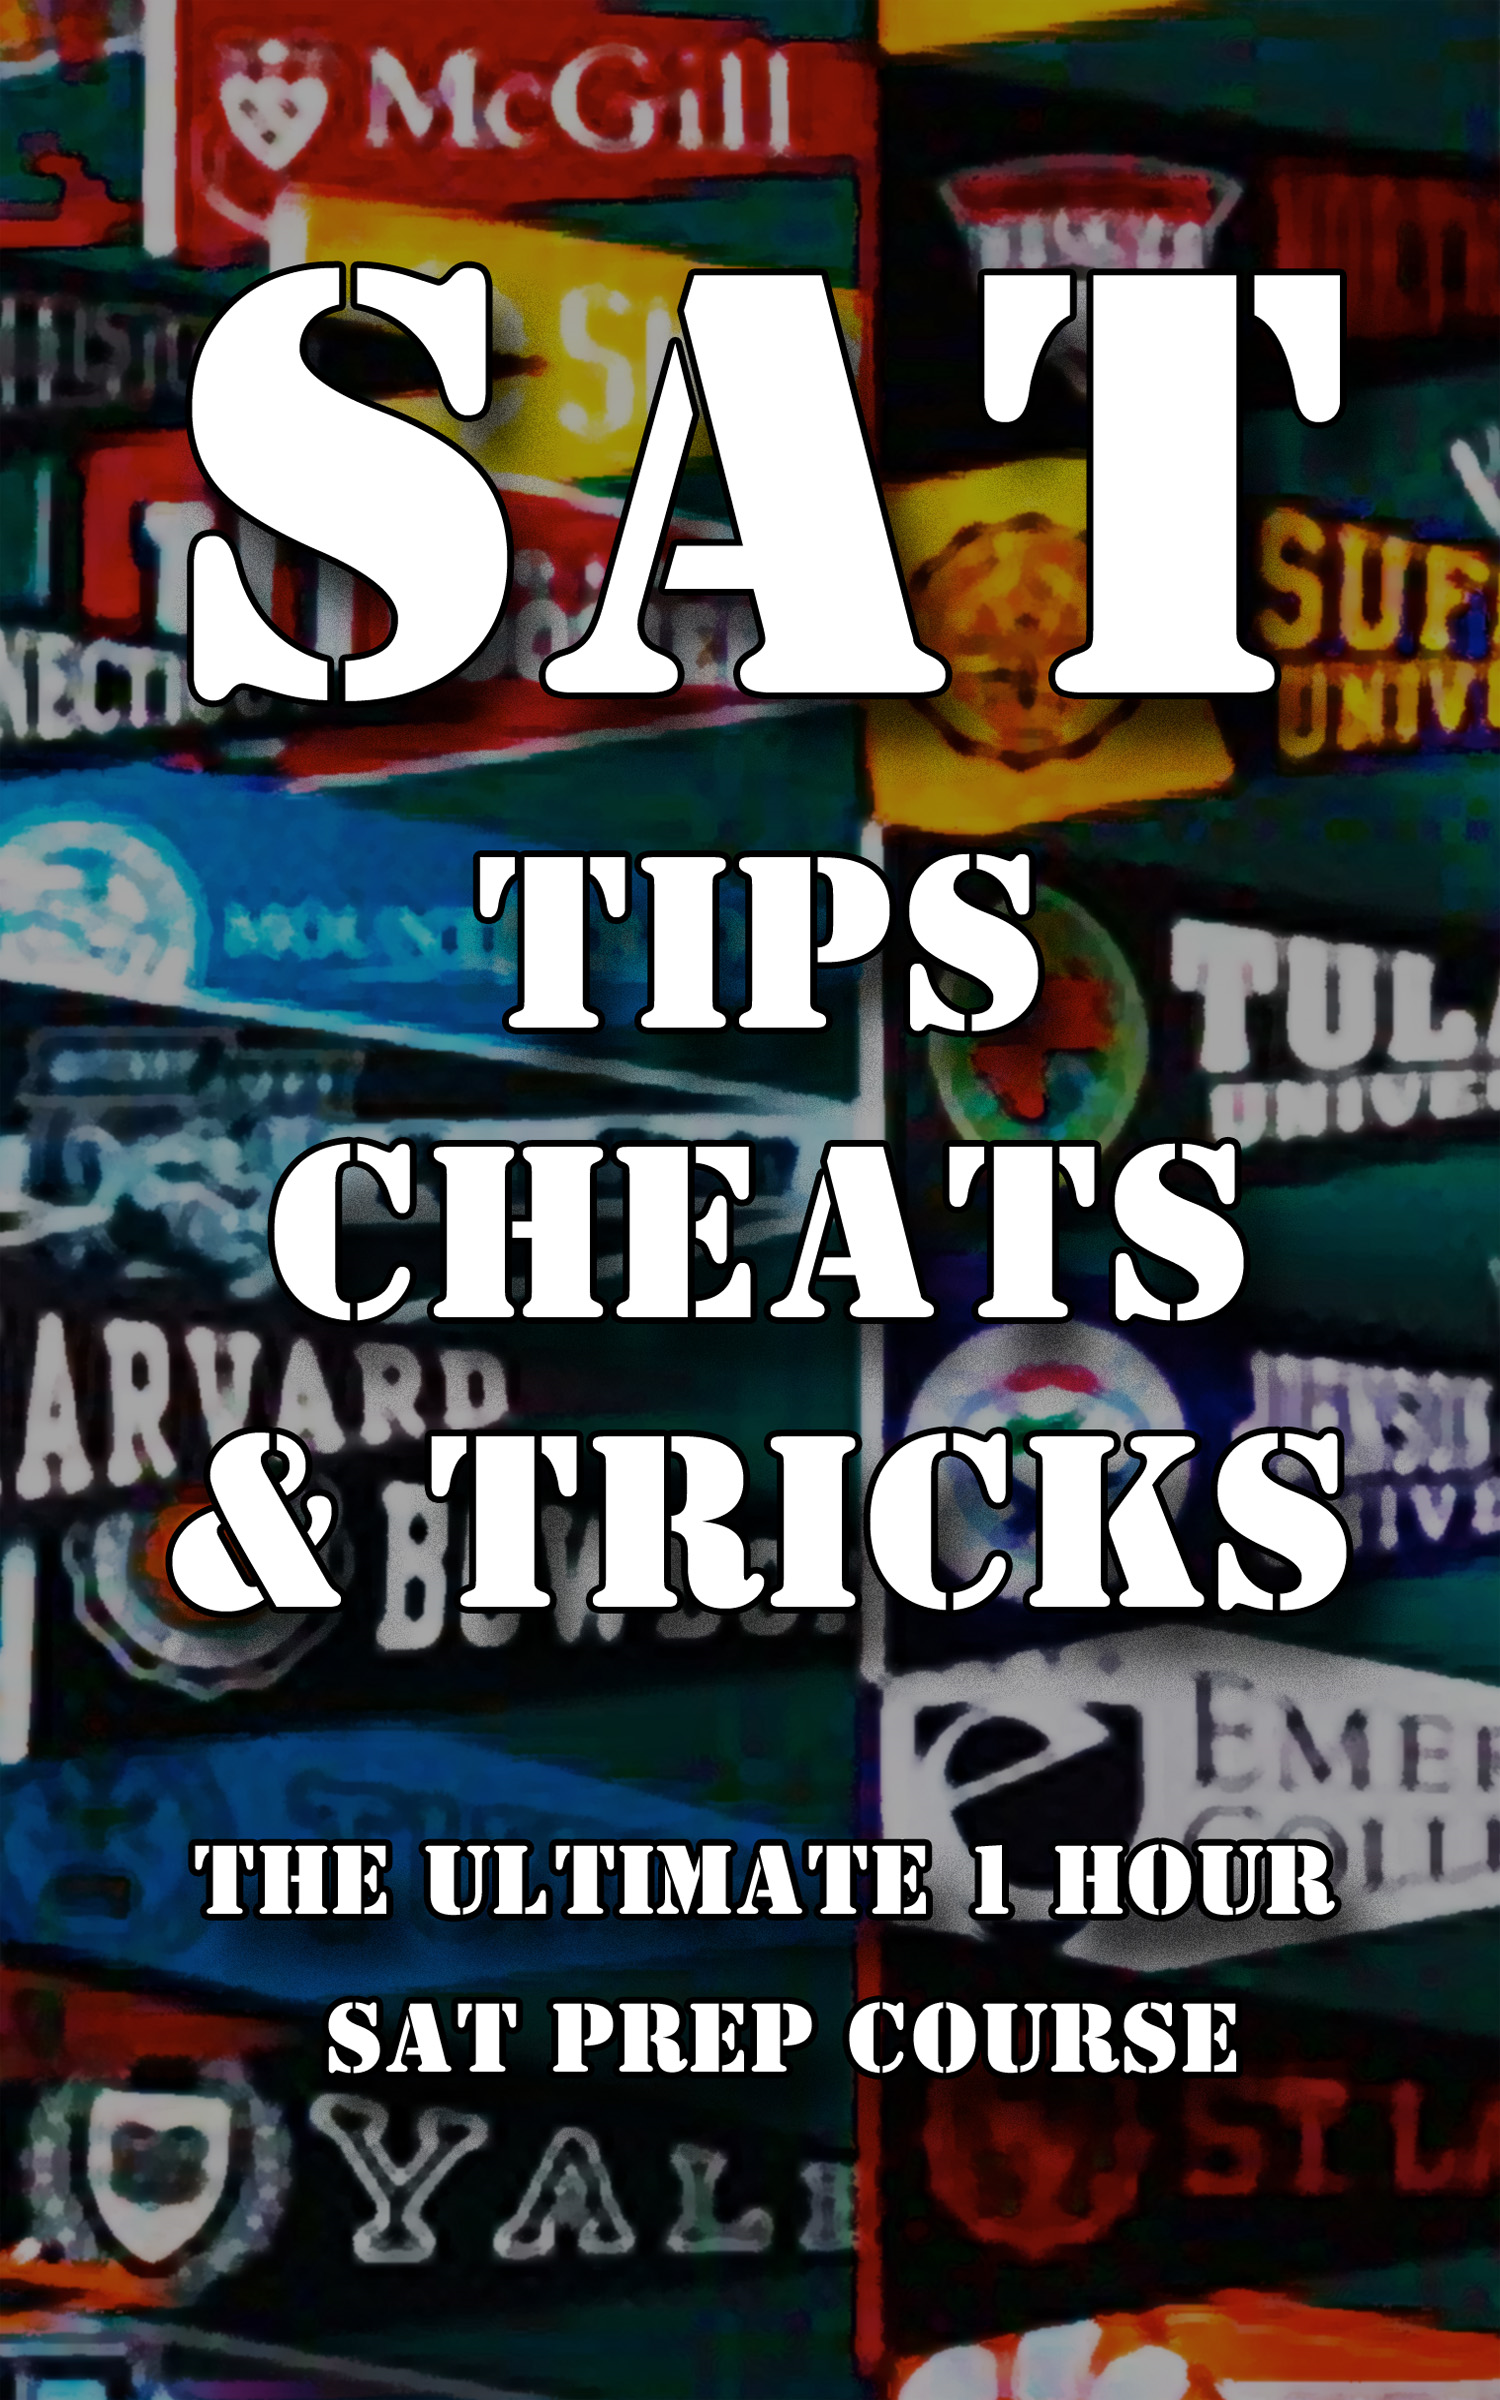 SAT Tips Cheats & Tricks - The Ultimate 1 Hour SAT Prep Course